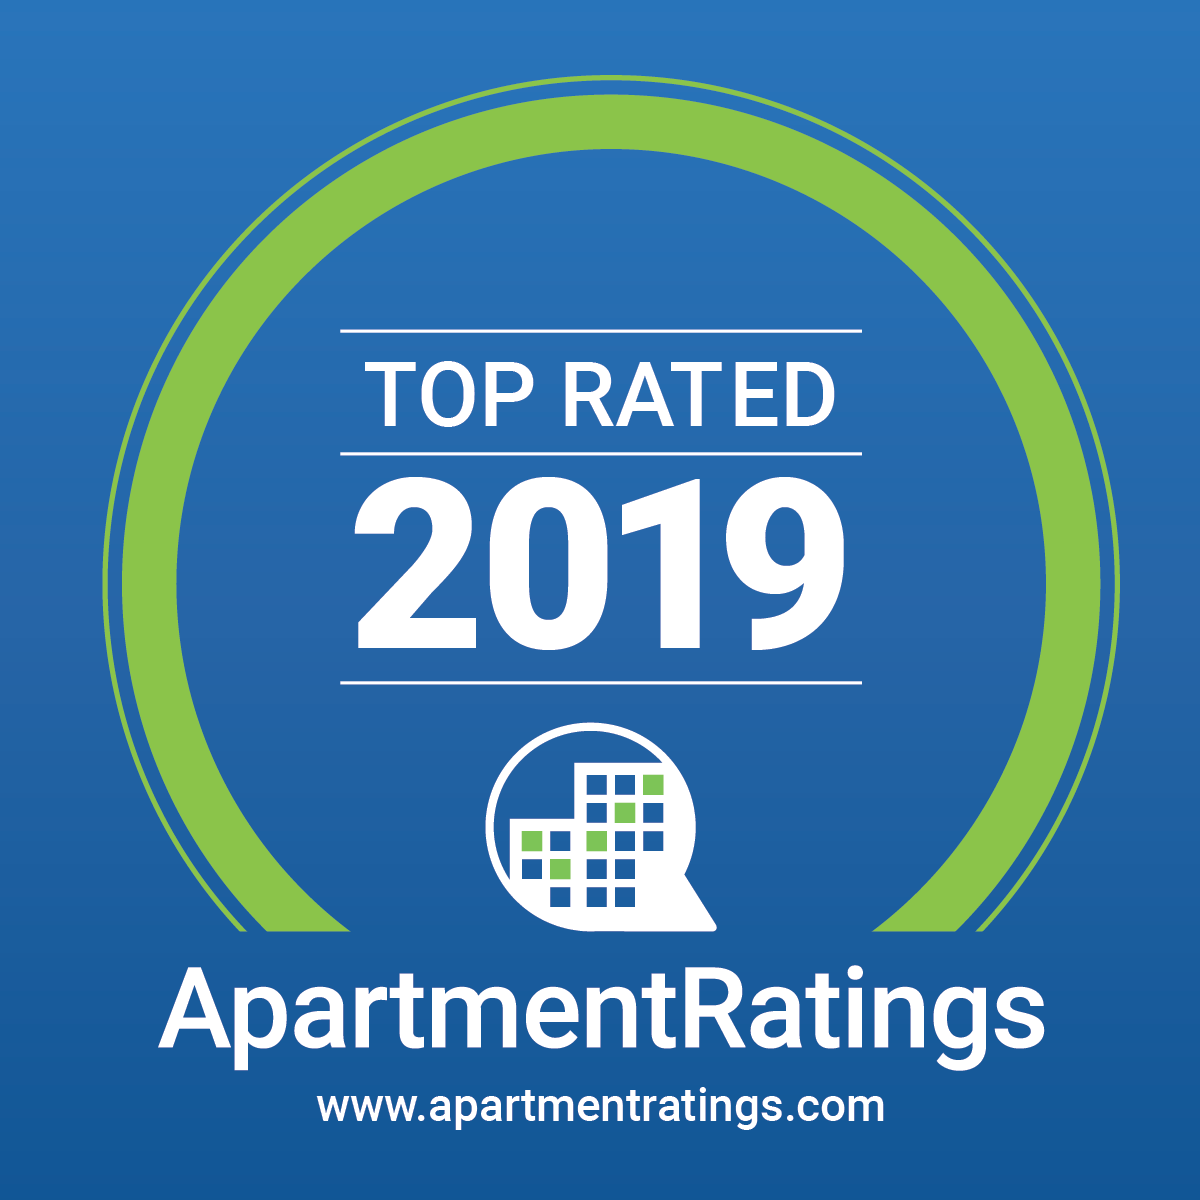 A badge for Top Rated Apartments 2019 awards.